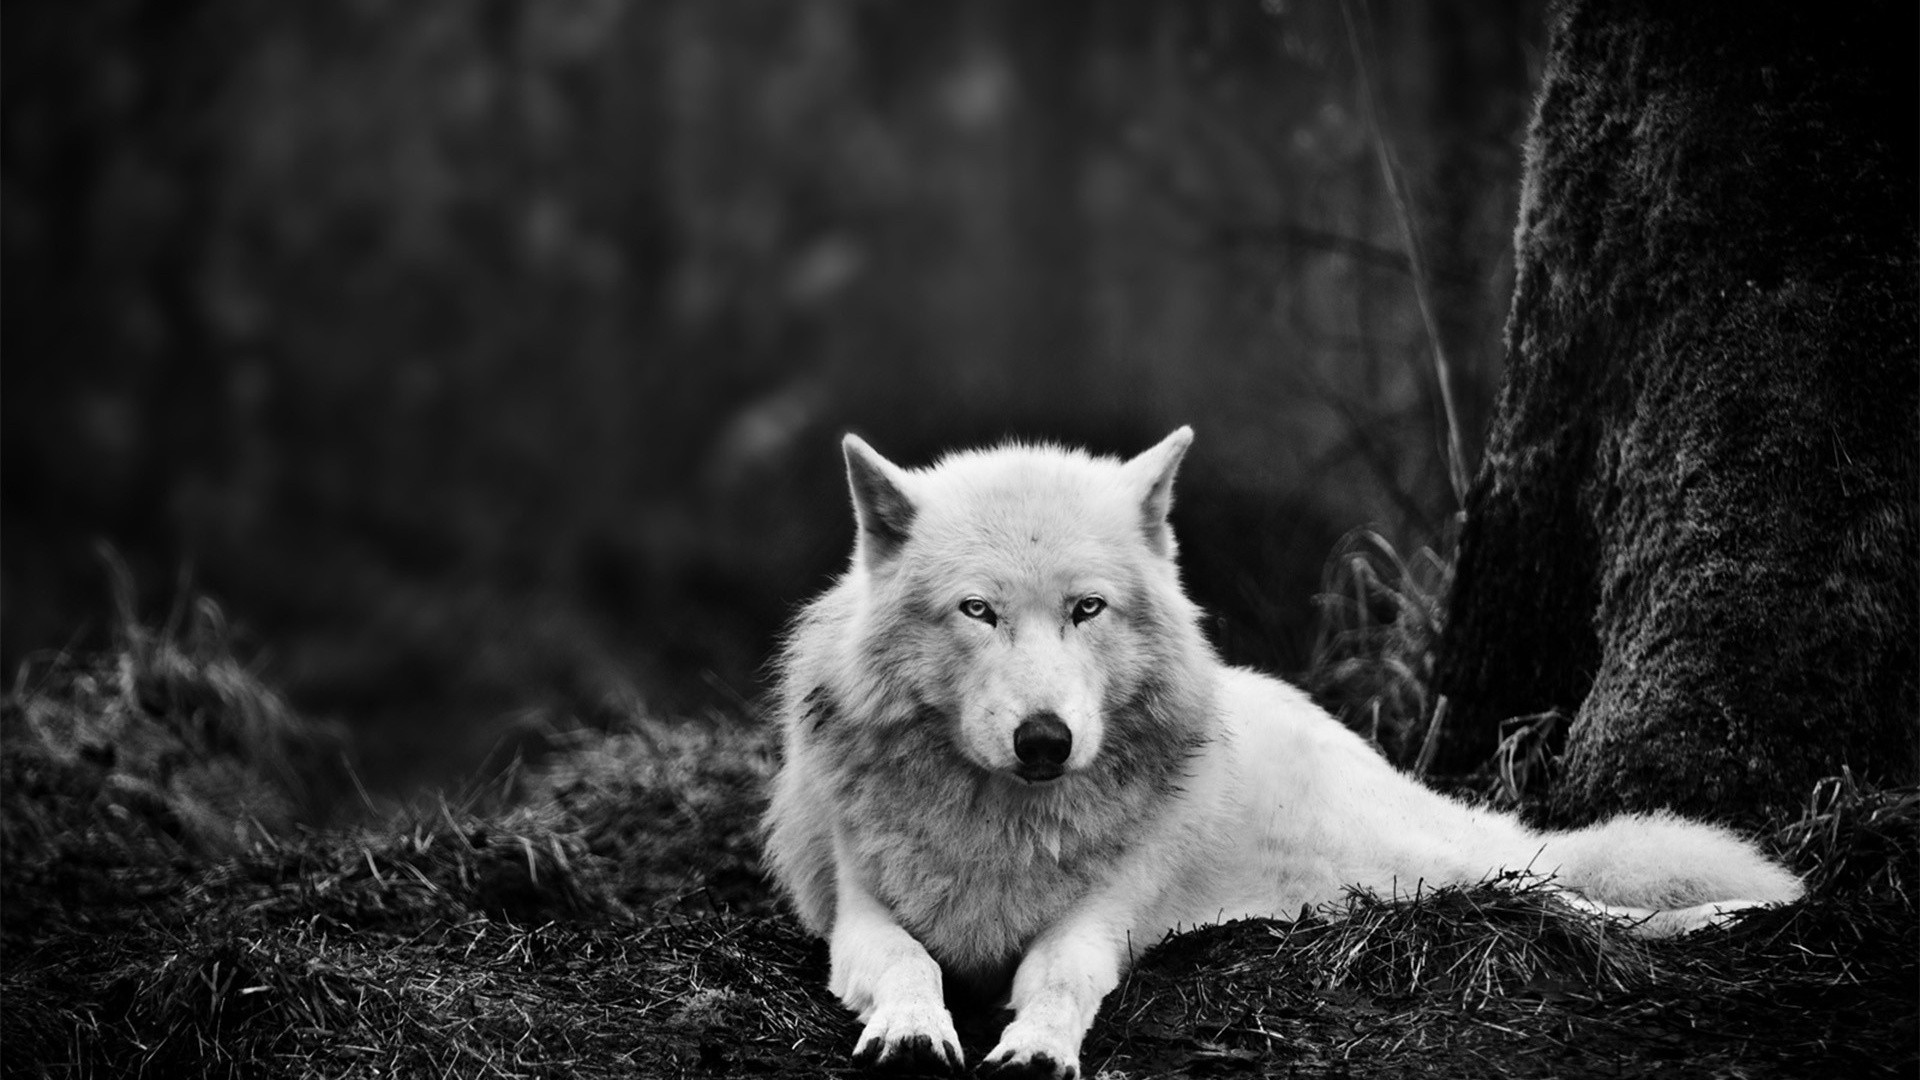 Download White Wolf Wolves HD Wallpaper 2679 Full Size 1920x1080